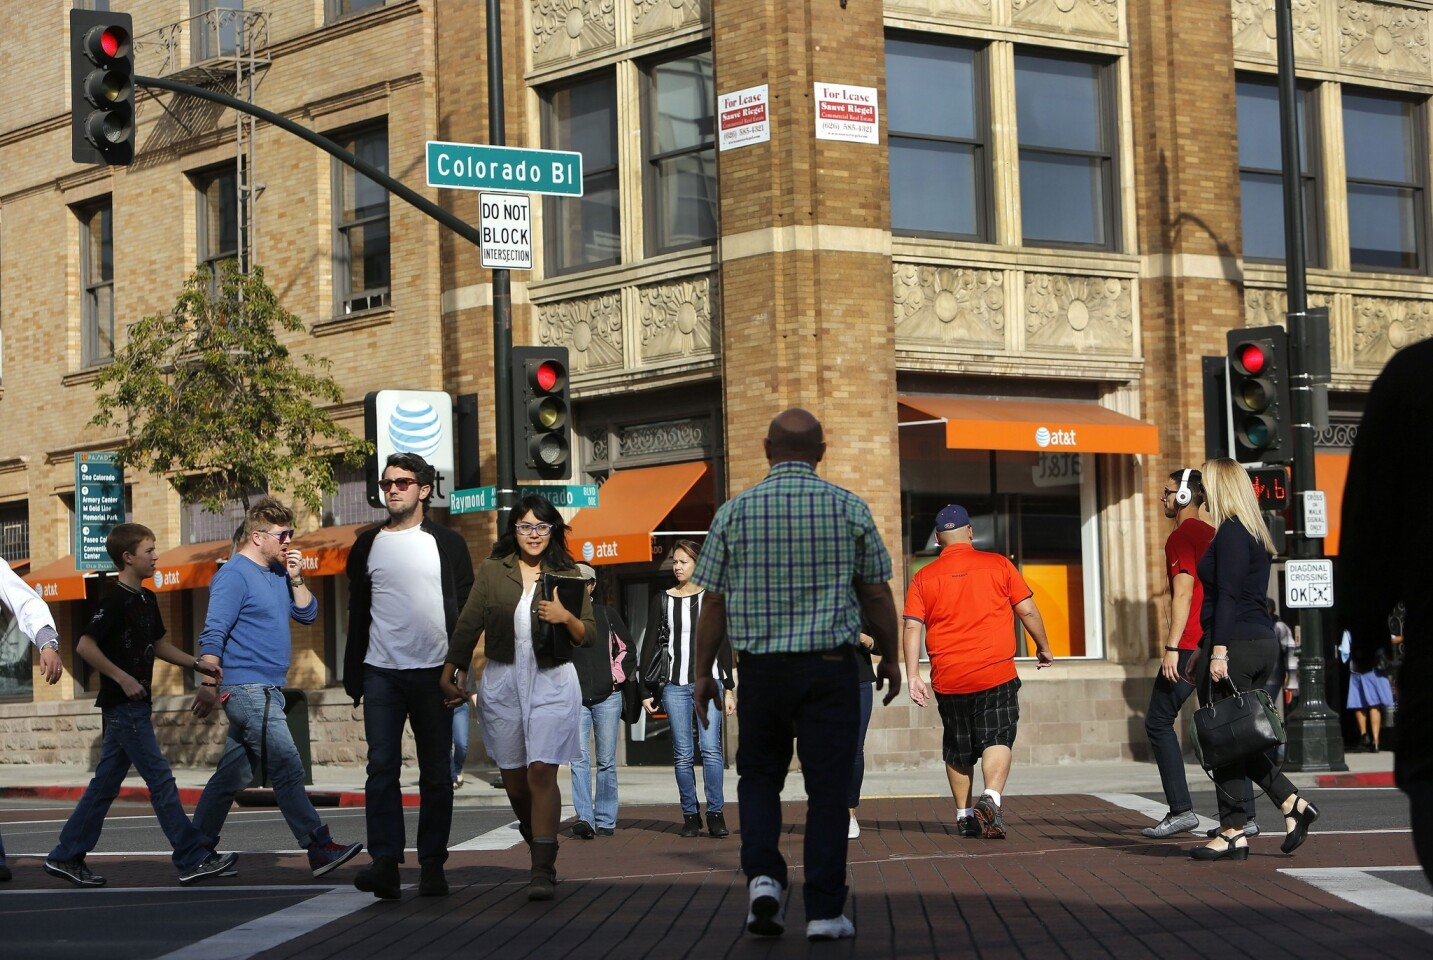 """Pedestrians cross at the busy intersection of Colorado Boulevard and Raymond Avenue. """"Pasadena is pursuing a broader concept of what streets are about,"""" said Mayor Bill Bogaard. """"They're not simply for moving cars as fast as you can. Streets are corridors of society and community."""""""